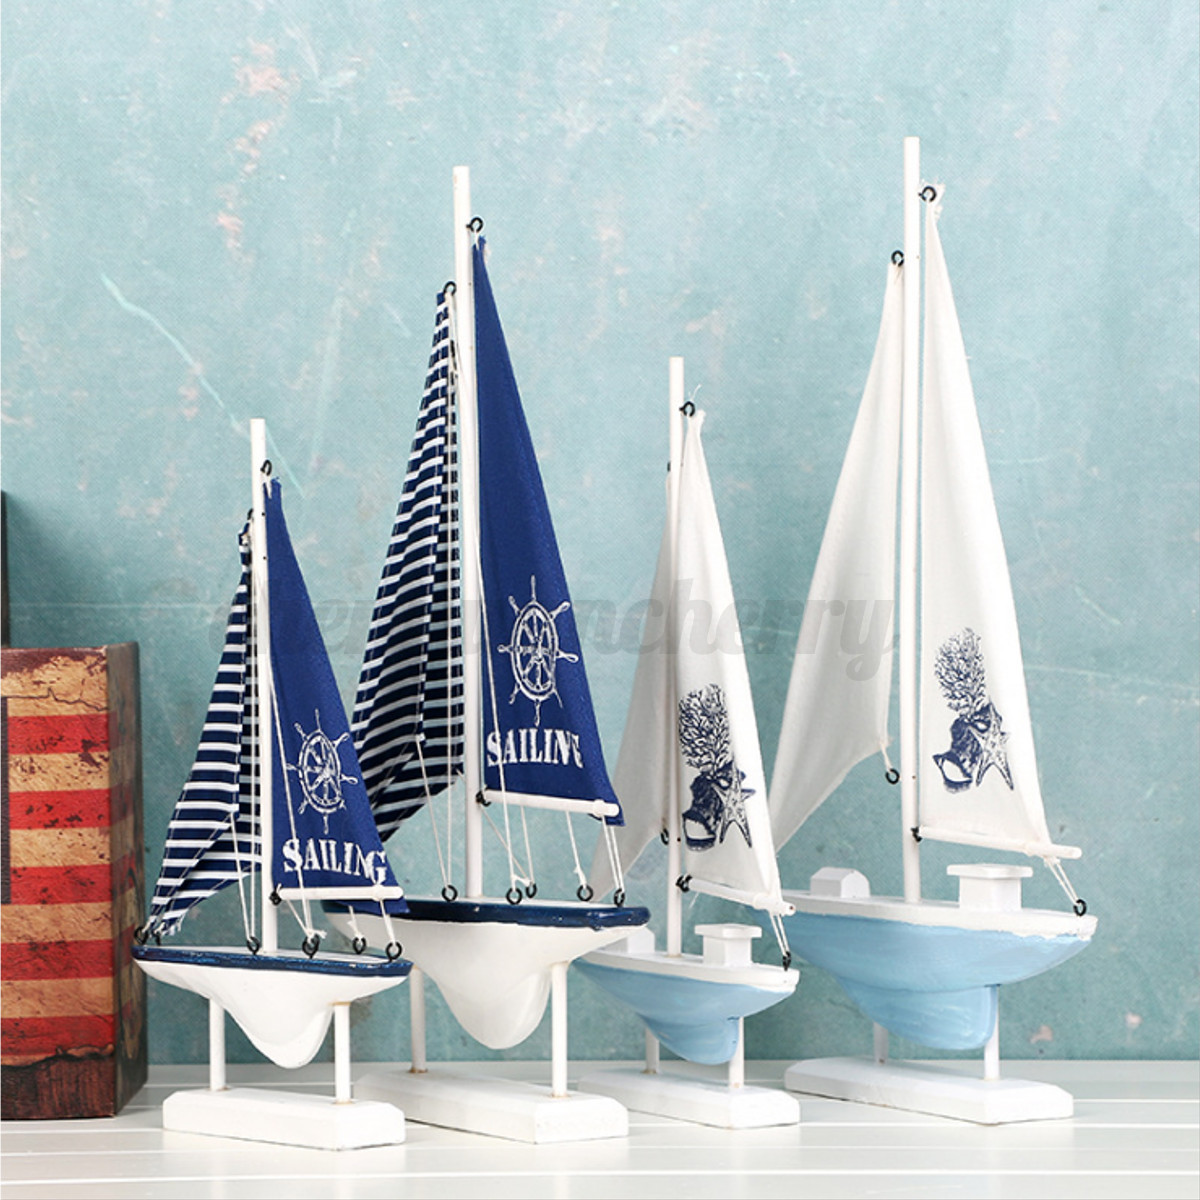 Ship-Assembly-Model-DIY-Kit-Wooden-Sailing-Boat-Decor-Wood-Toy-Gift-Collectables